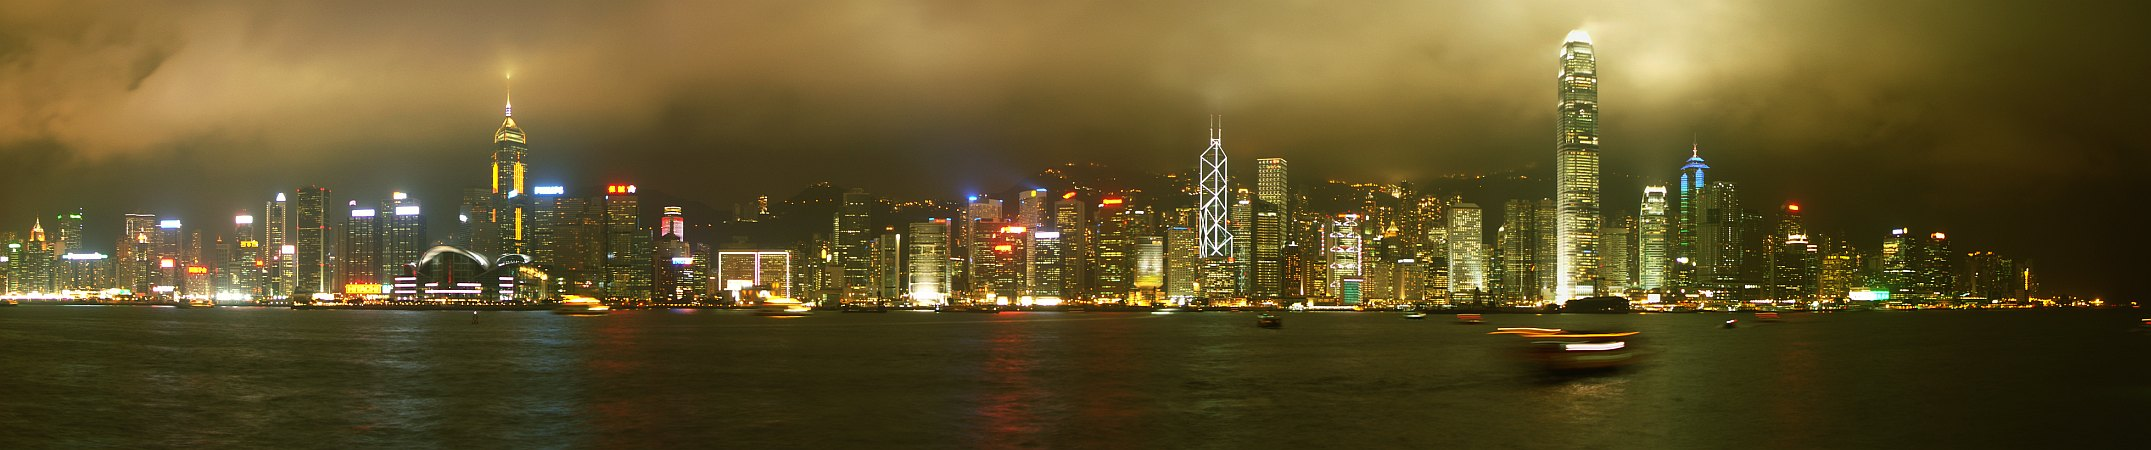 Photo - Vue panoramique - Ile de Hong Kong de nuit